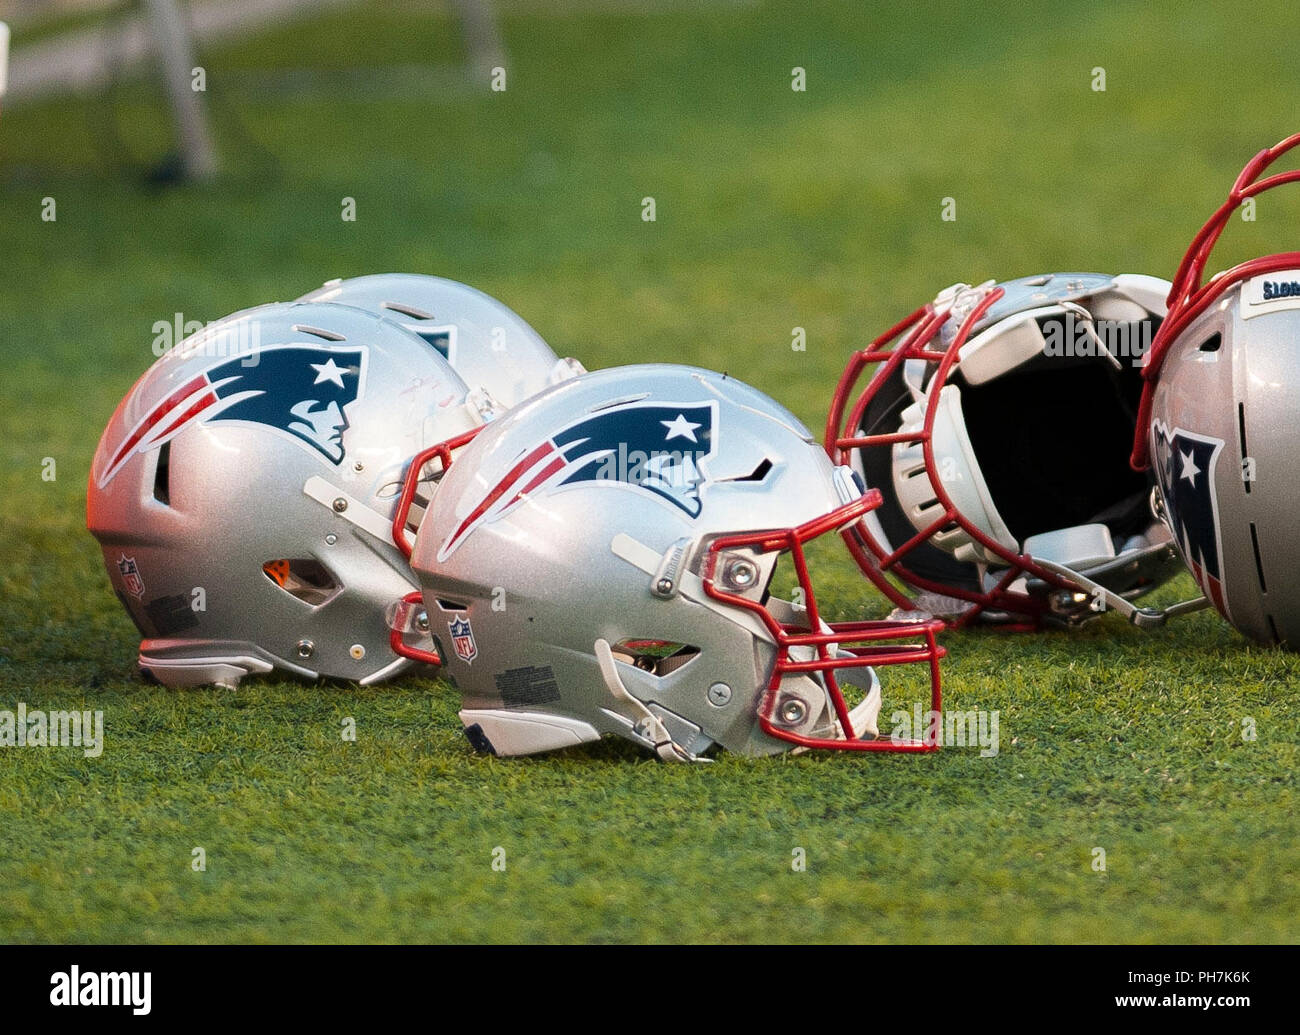 August 31, 2018 - East Rutherford, New Jersey, U.S. - New England Patriots helmets during a preseason game between the New England Patriots and the New York Giants at MetLife Stadium in East Rutherford, New Jersey. Duncan Williams/CSM - Stock Image